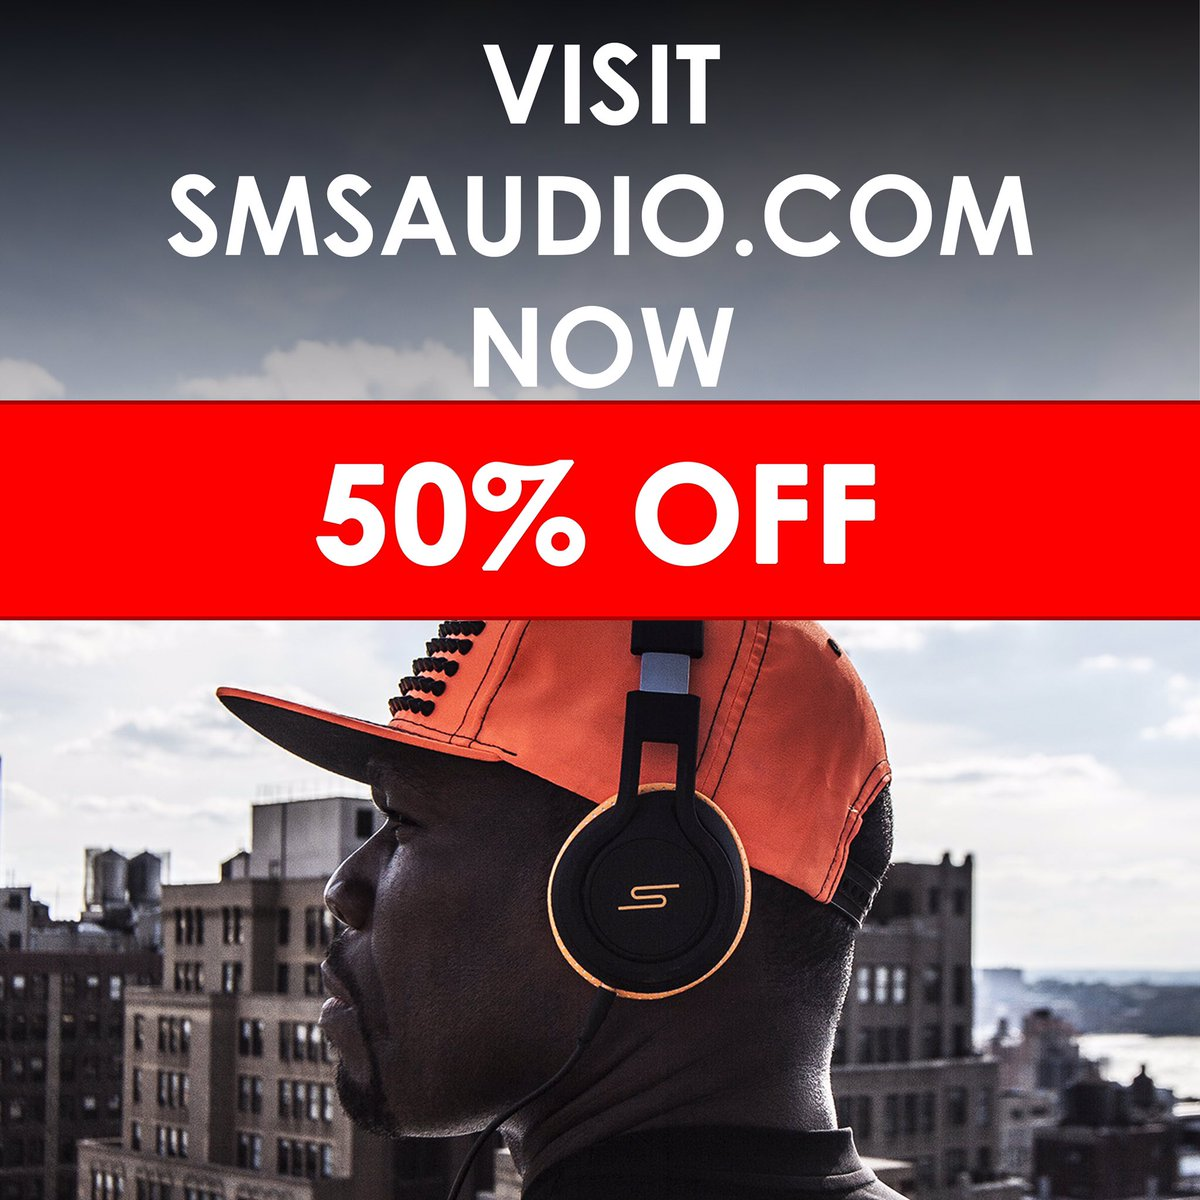 https://t.co/bF0uuKnjbl  Don't miss out #SMSAUDIO https://t.co/lHkpL5Hih9